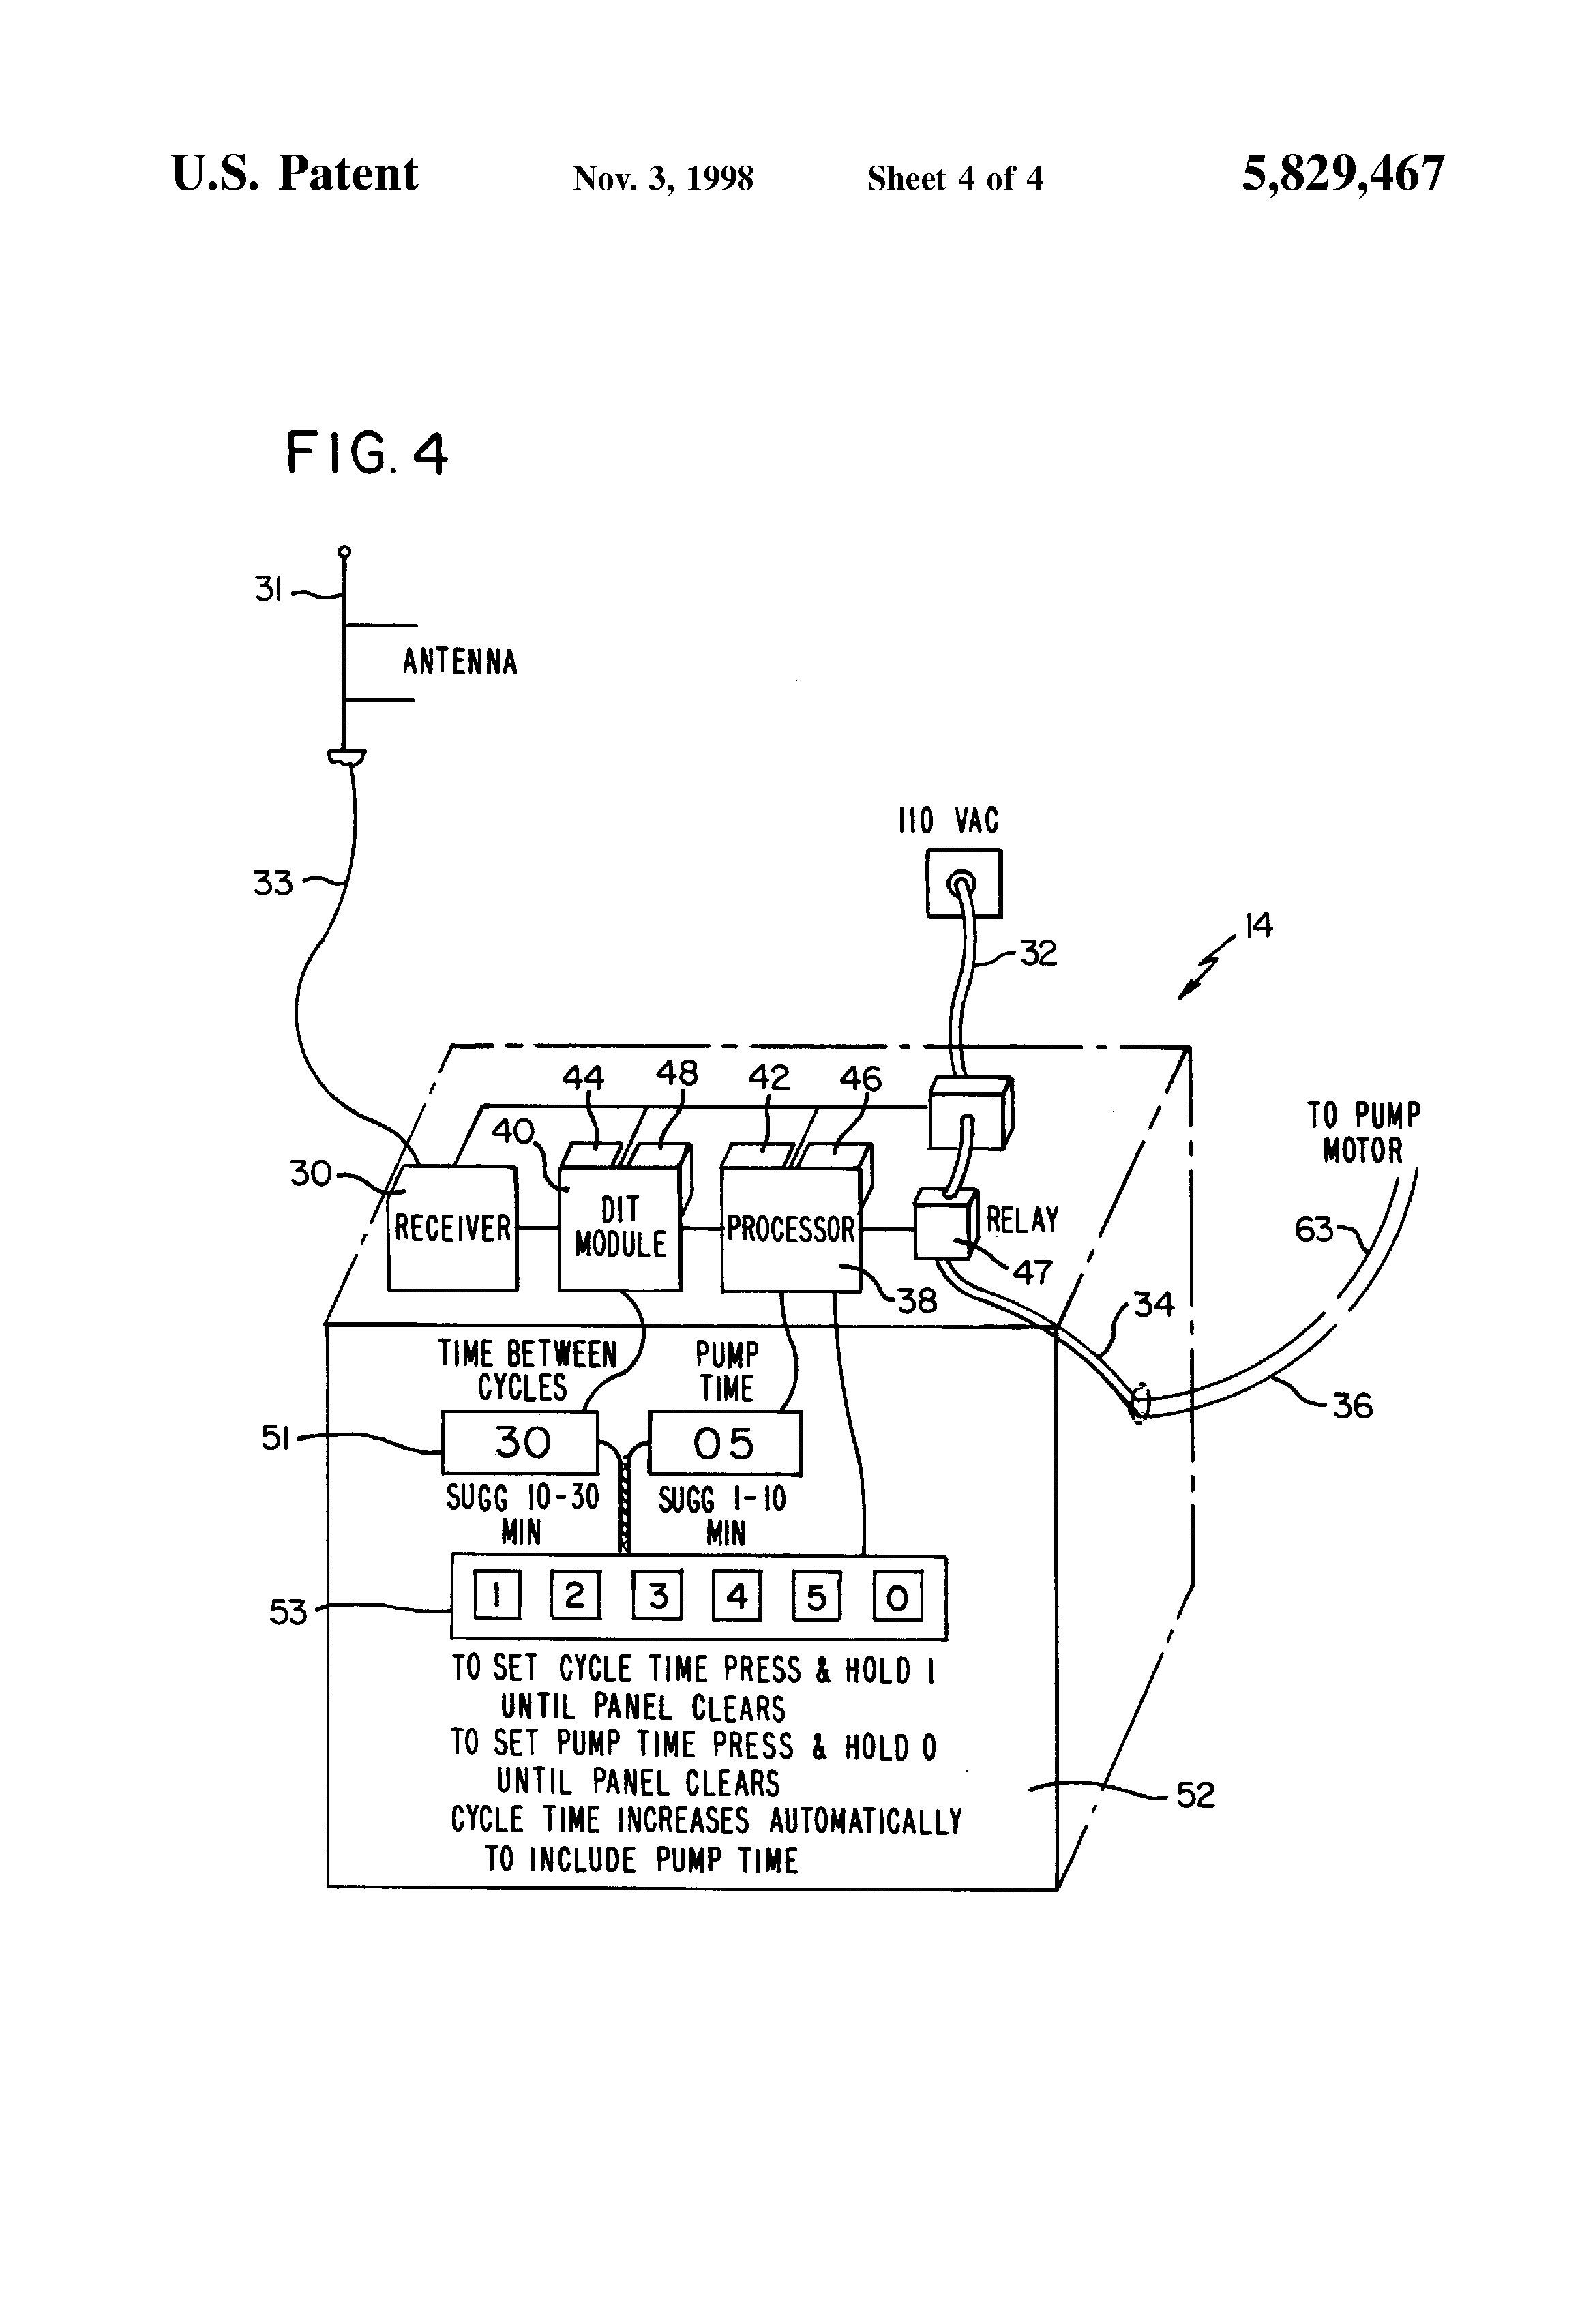 Snap Nex 8100 Wiring Harness Pioneer Avic 5000nex Mvh P8200bt Diagram Patent Us5829467 Residential Hot Water Circulation System And Associated Method Google Patents